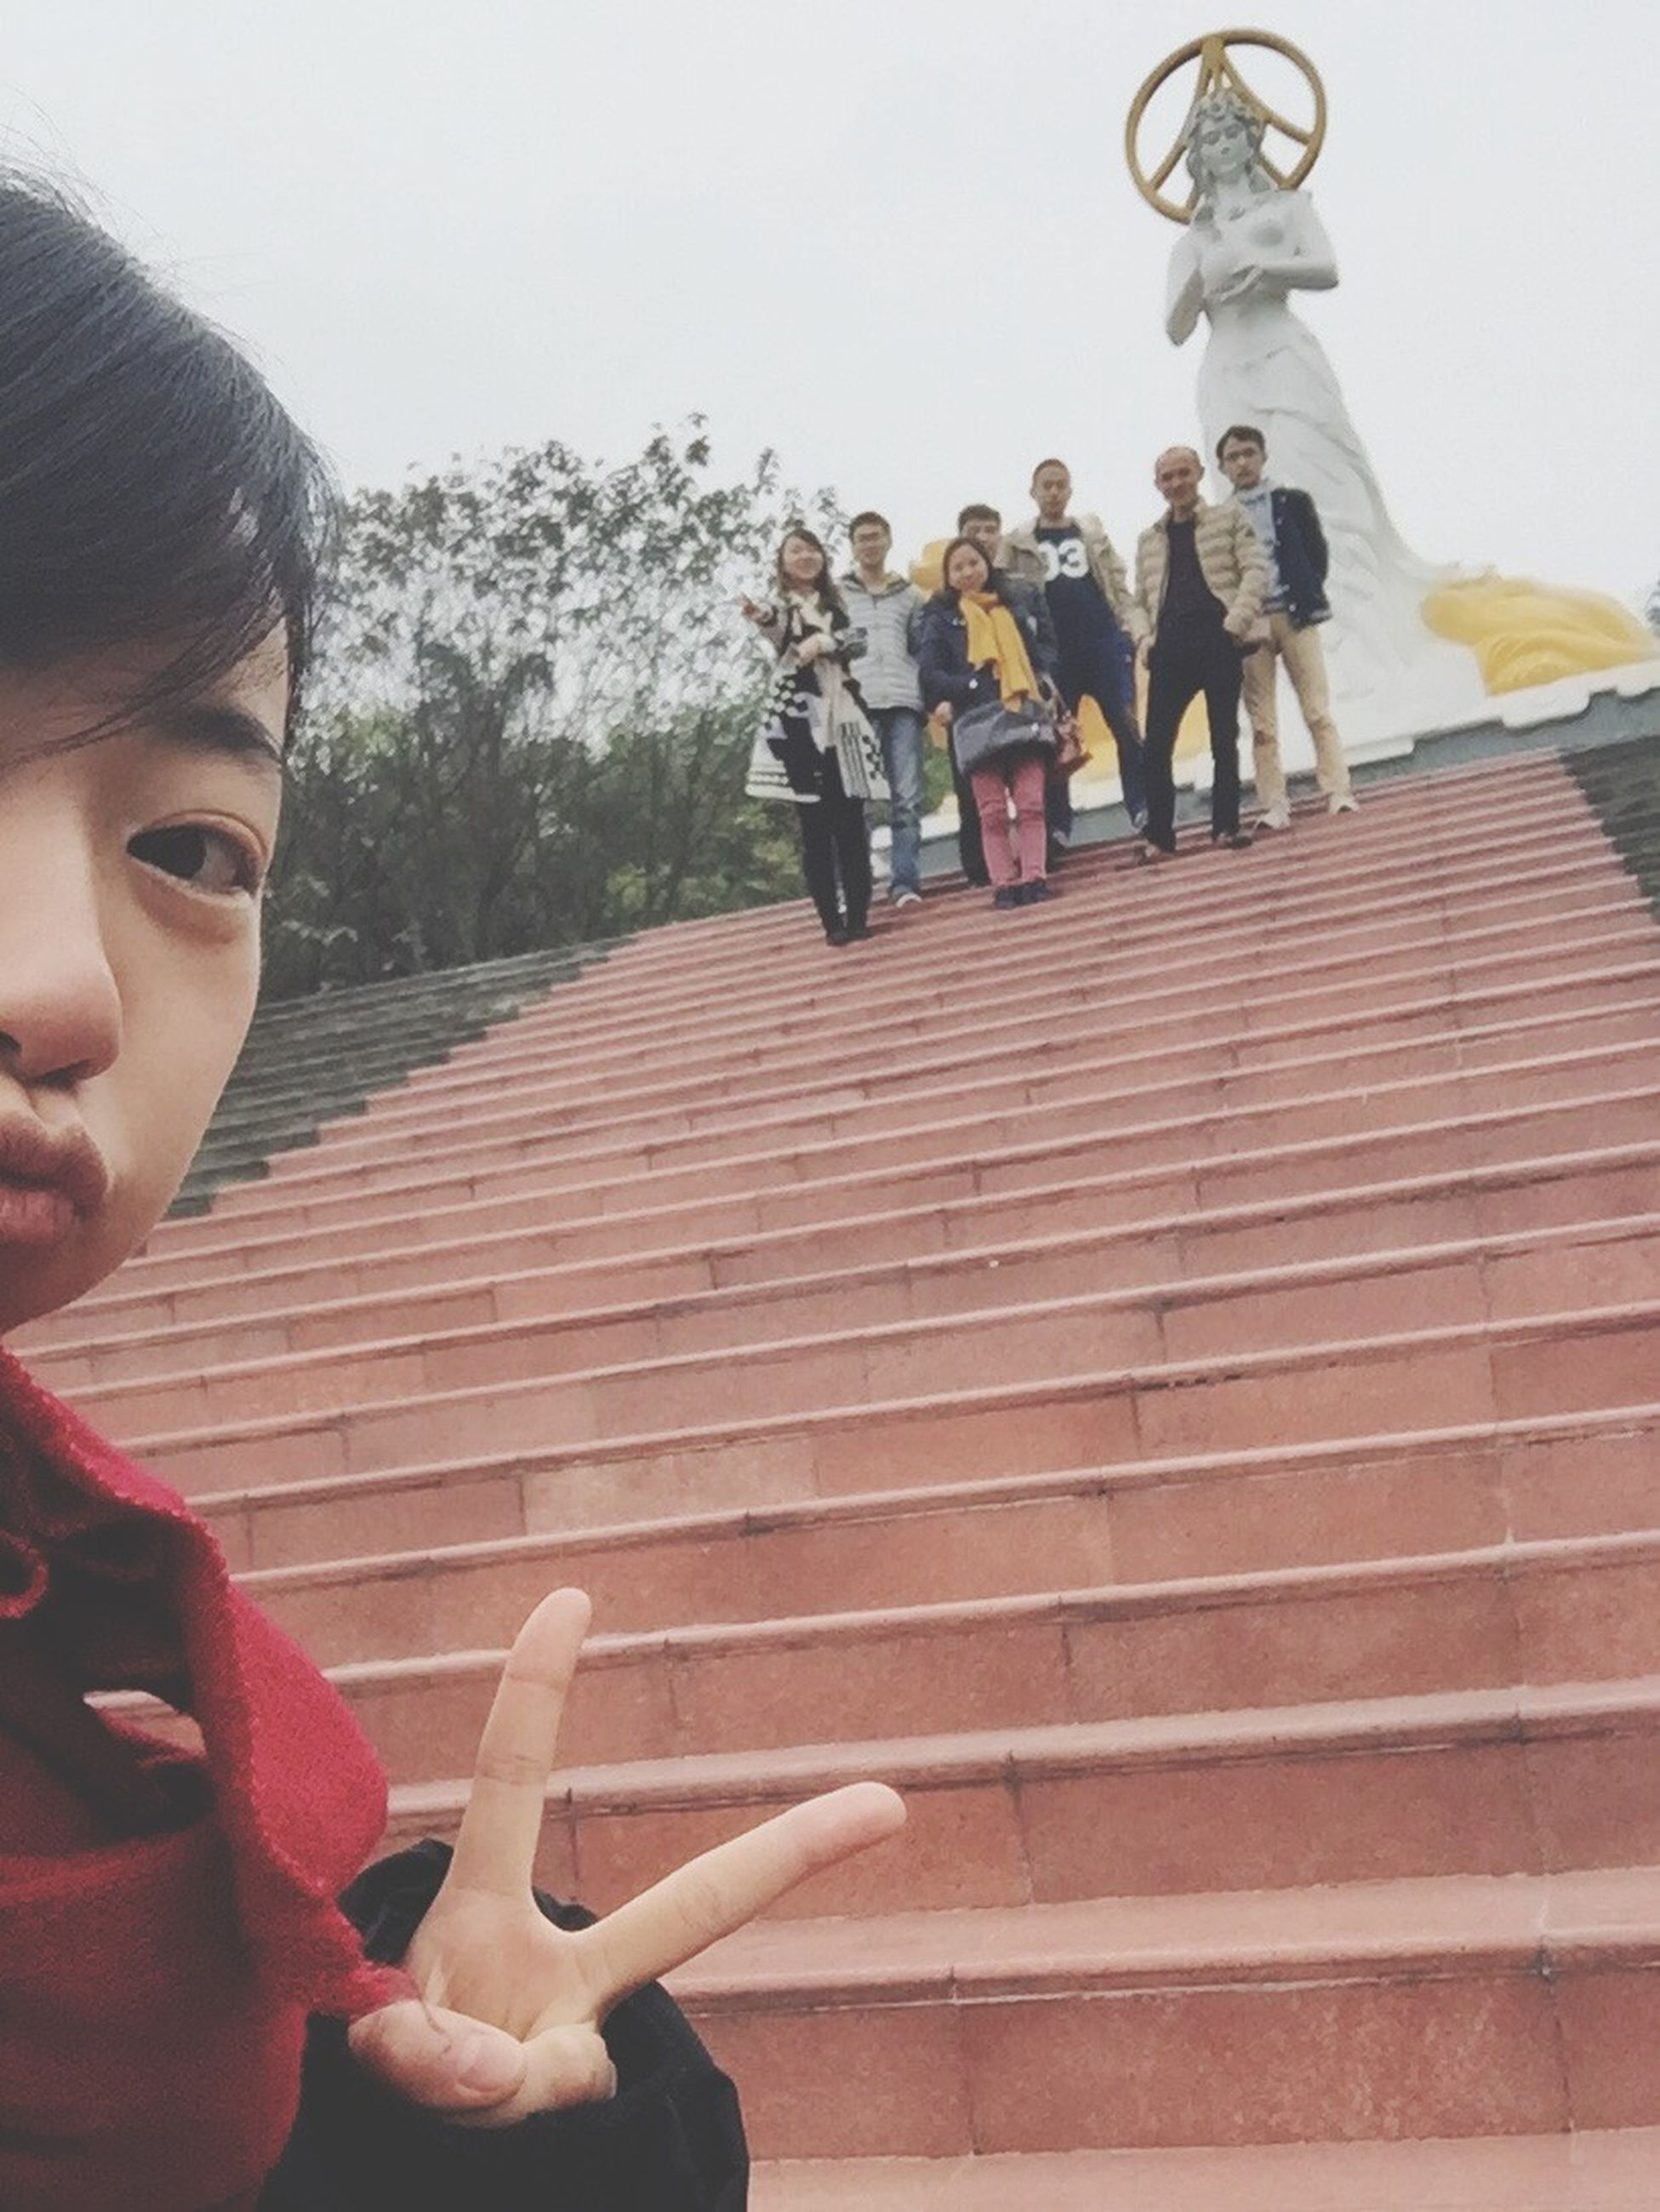 lifestyles, leisure activity, casual clothing, togetherness, person, steps, men, railing, standing, bonding, holding, love, boys, childhood, steps and staircases, day, friendship